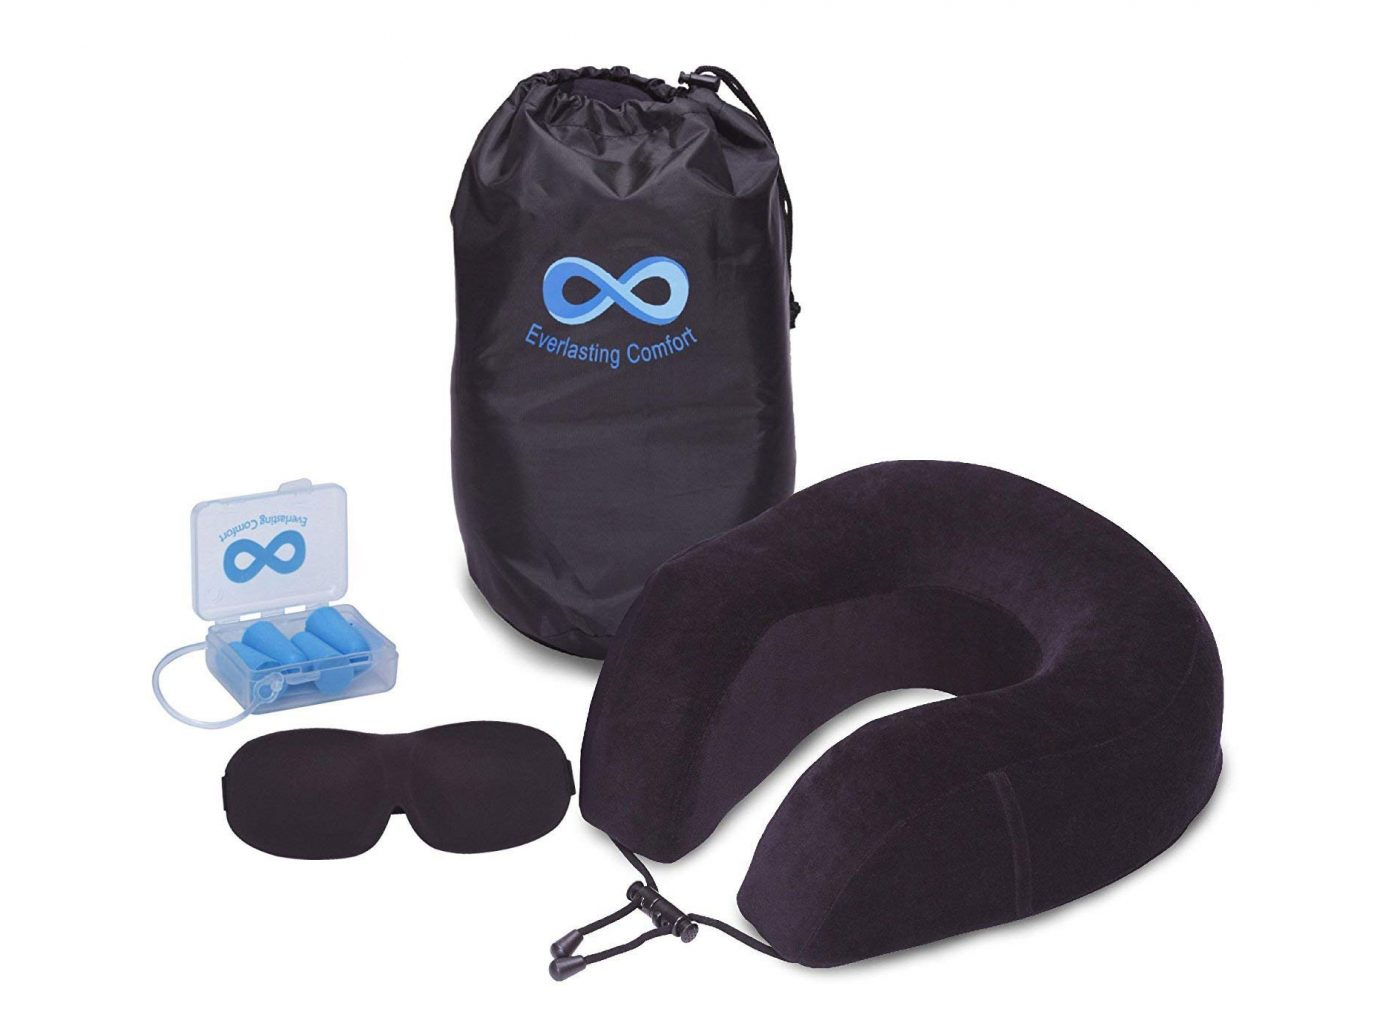 Travel pillow and eye mask set